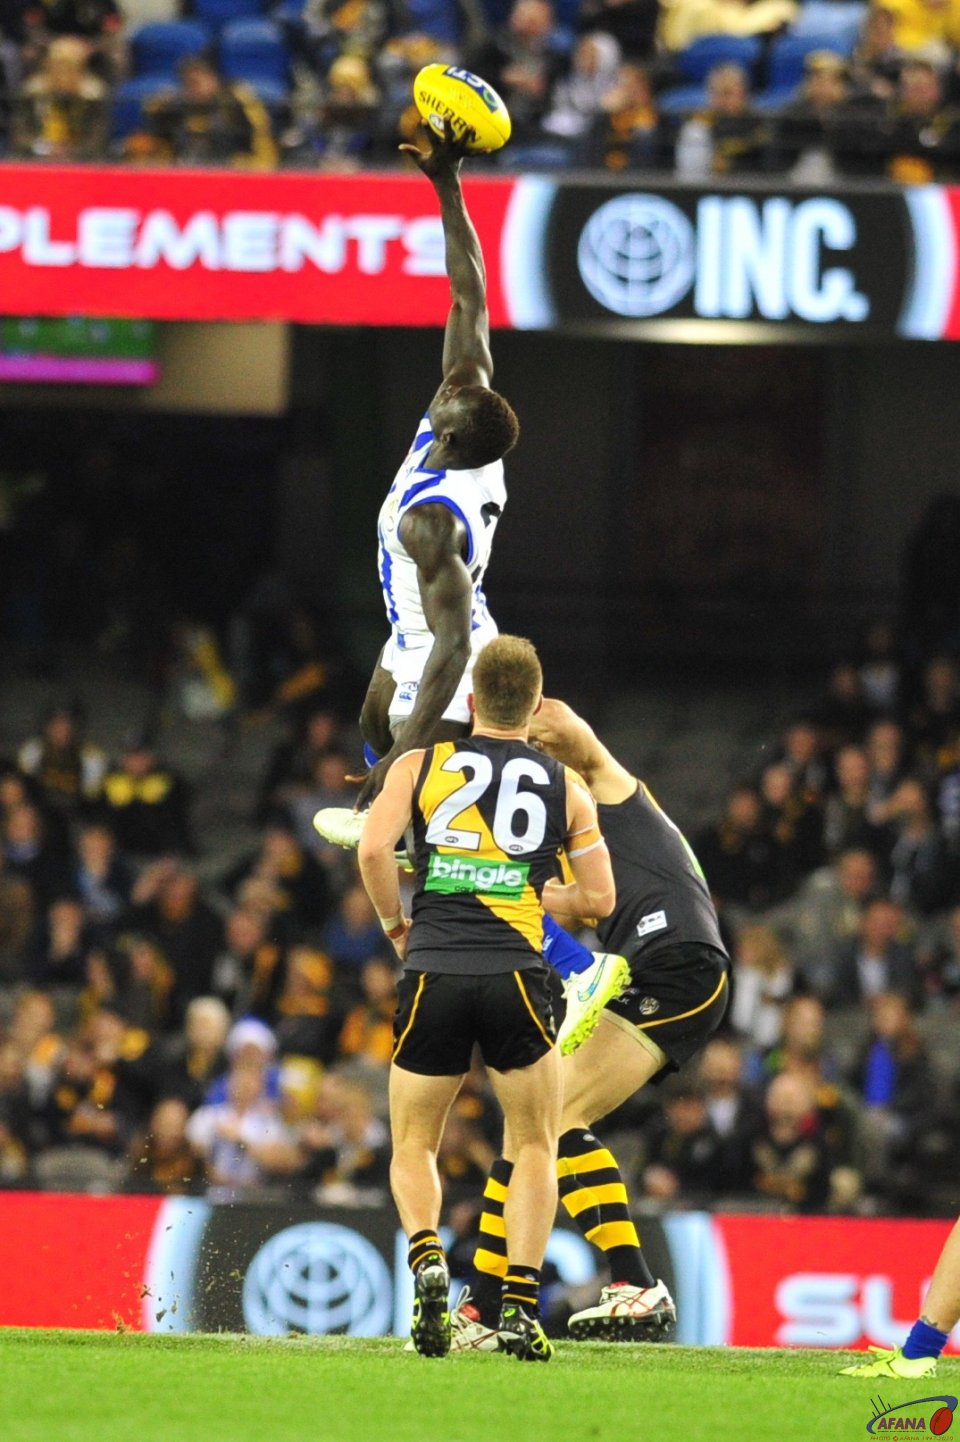 Majak gets some air